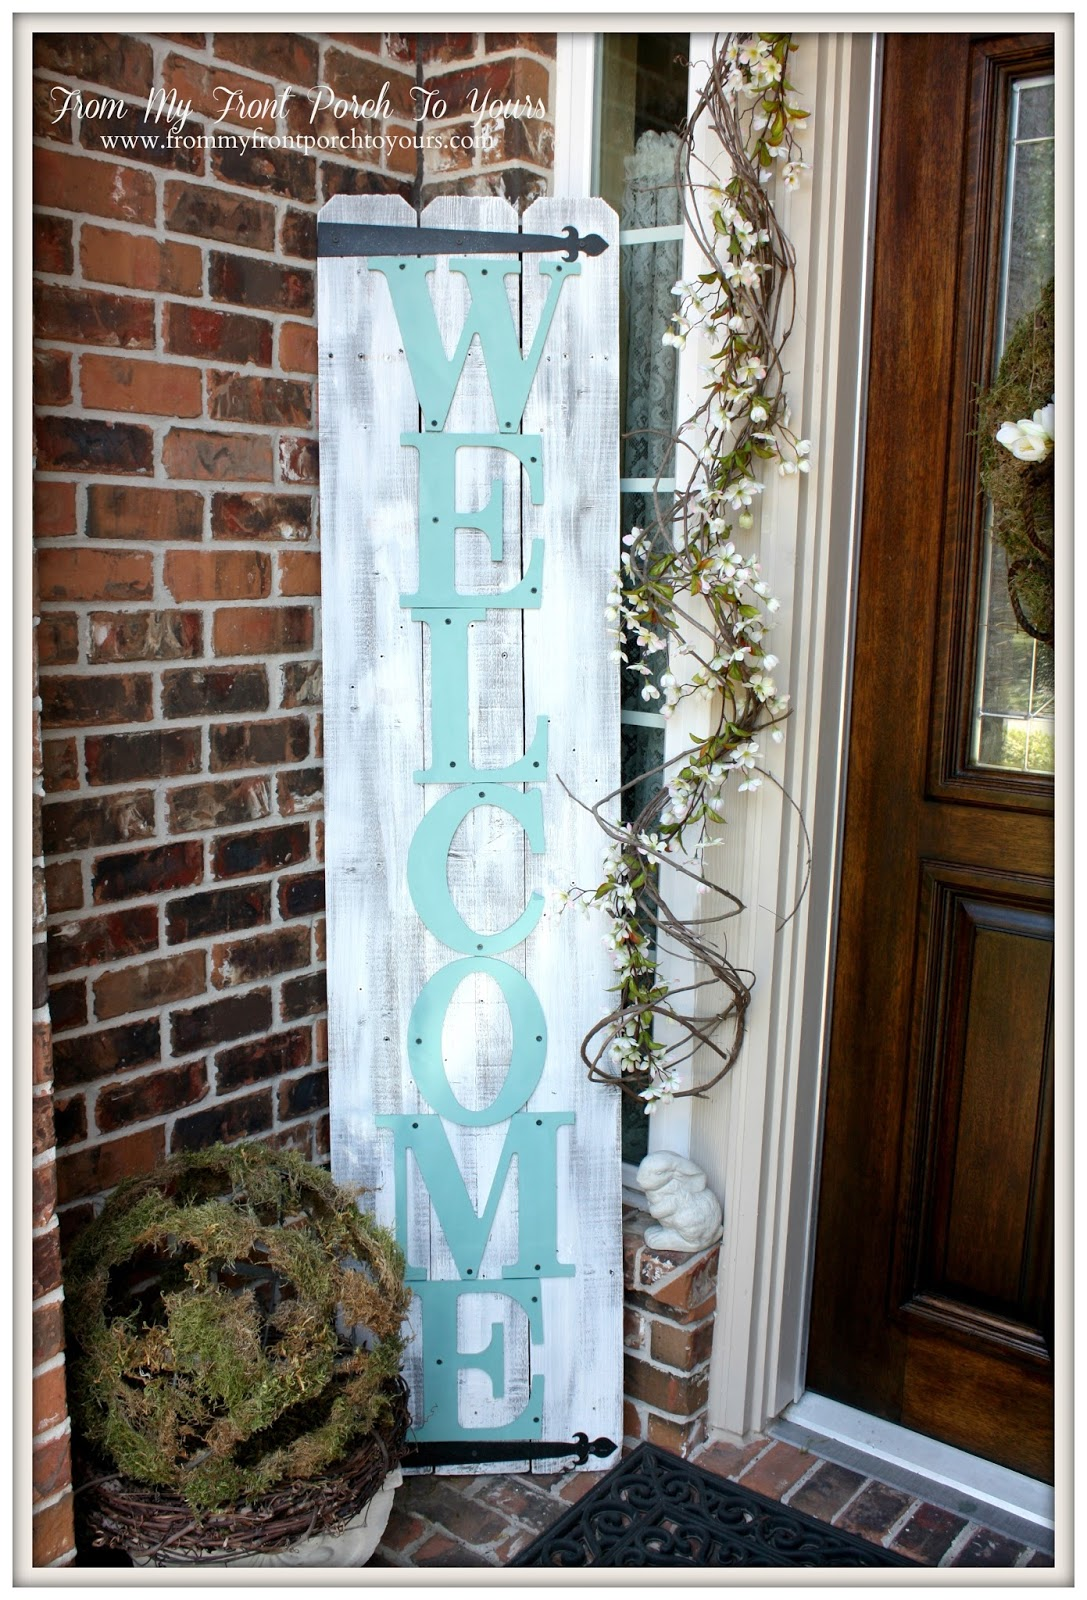 Welcome Sign-How I Found My Style Sundays- From My Front Porch To Yours